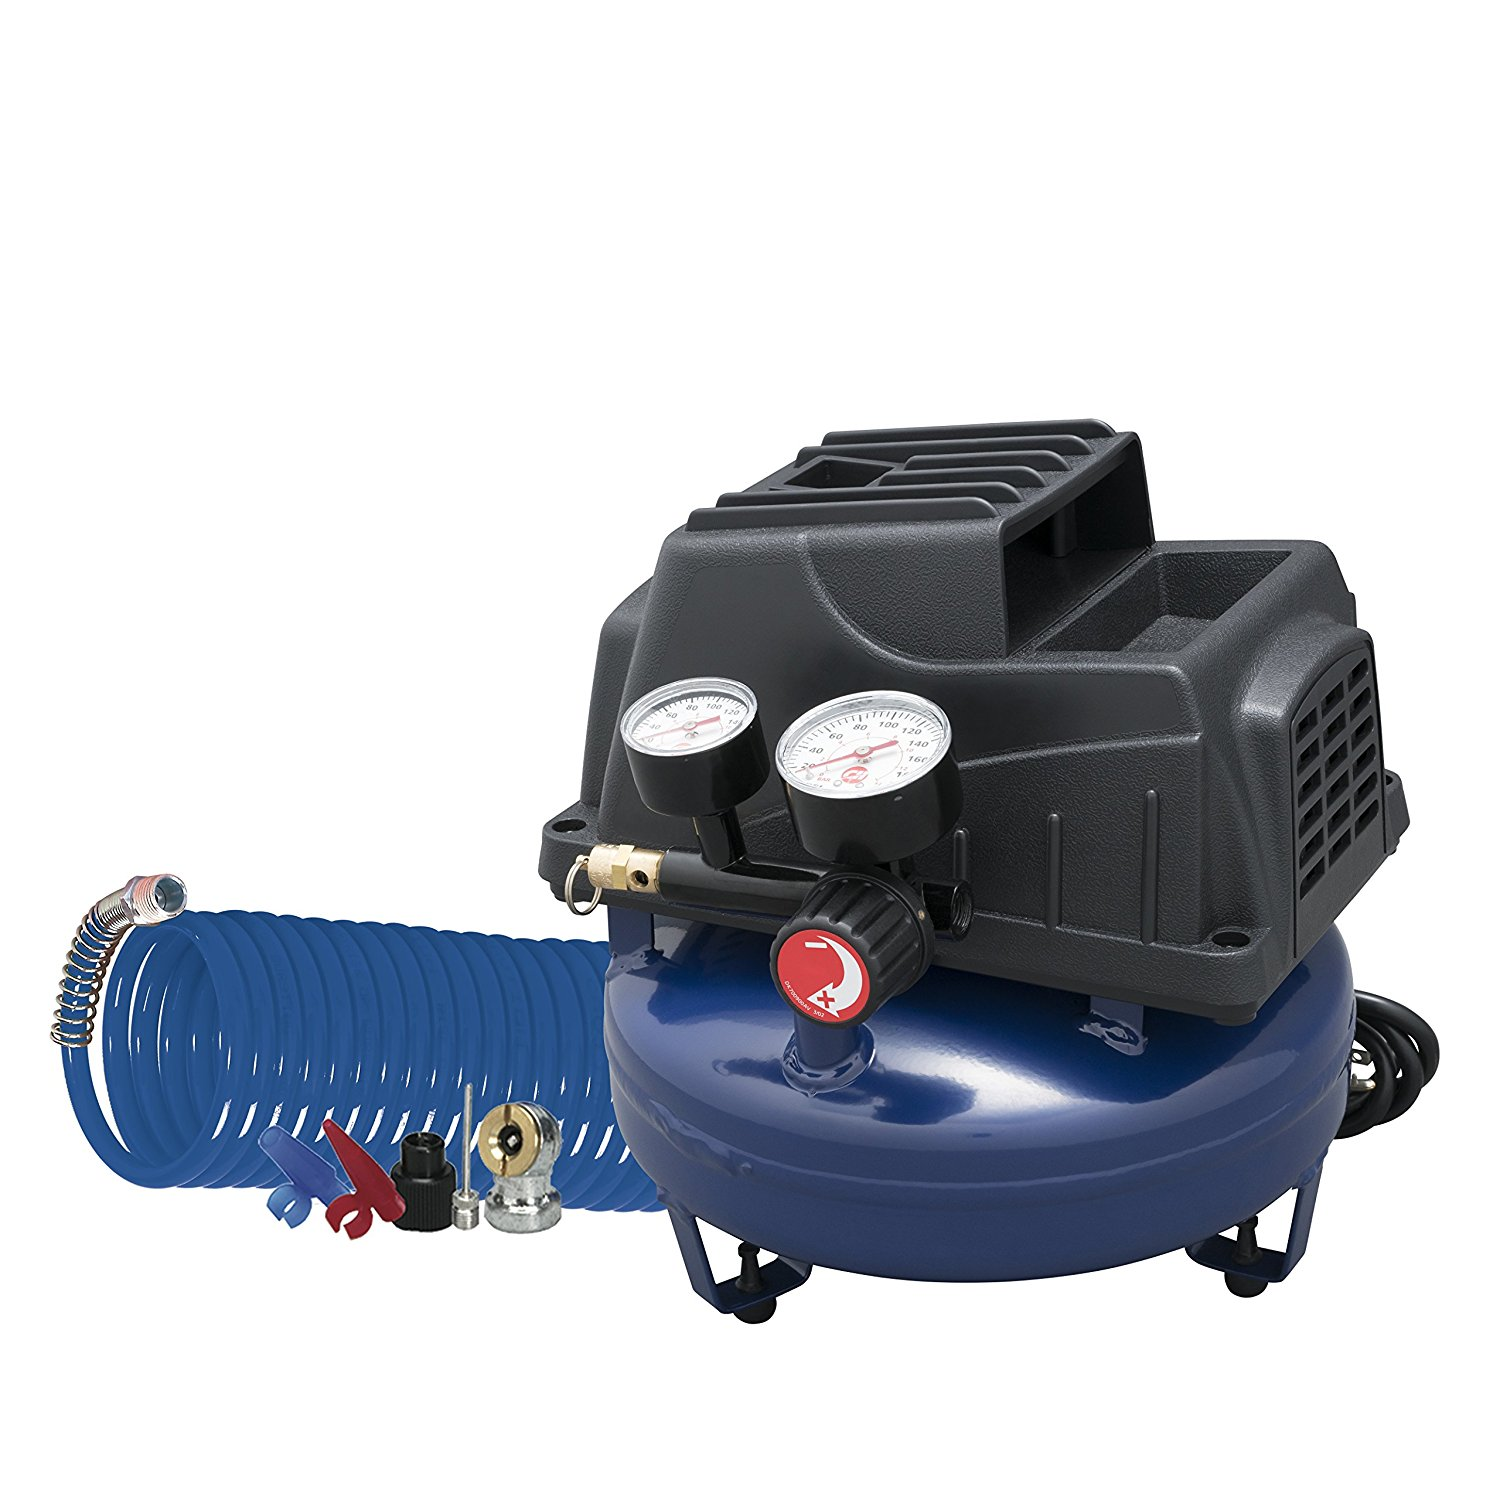 Air Compressor, 1 Gallon, Pancake, Oilless Pump, 110 PSI w/ Recoil Air Hose & Inflation Kit (Campbell Hausfeld FP2028) - Pancake Tank Air Compressors - Amazon.com